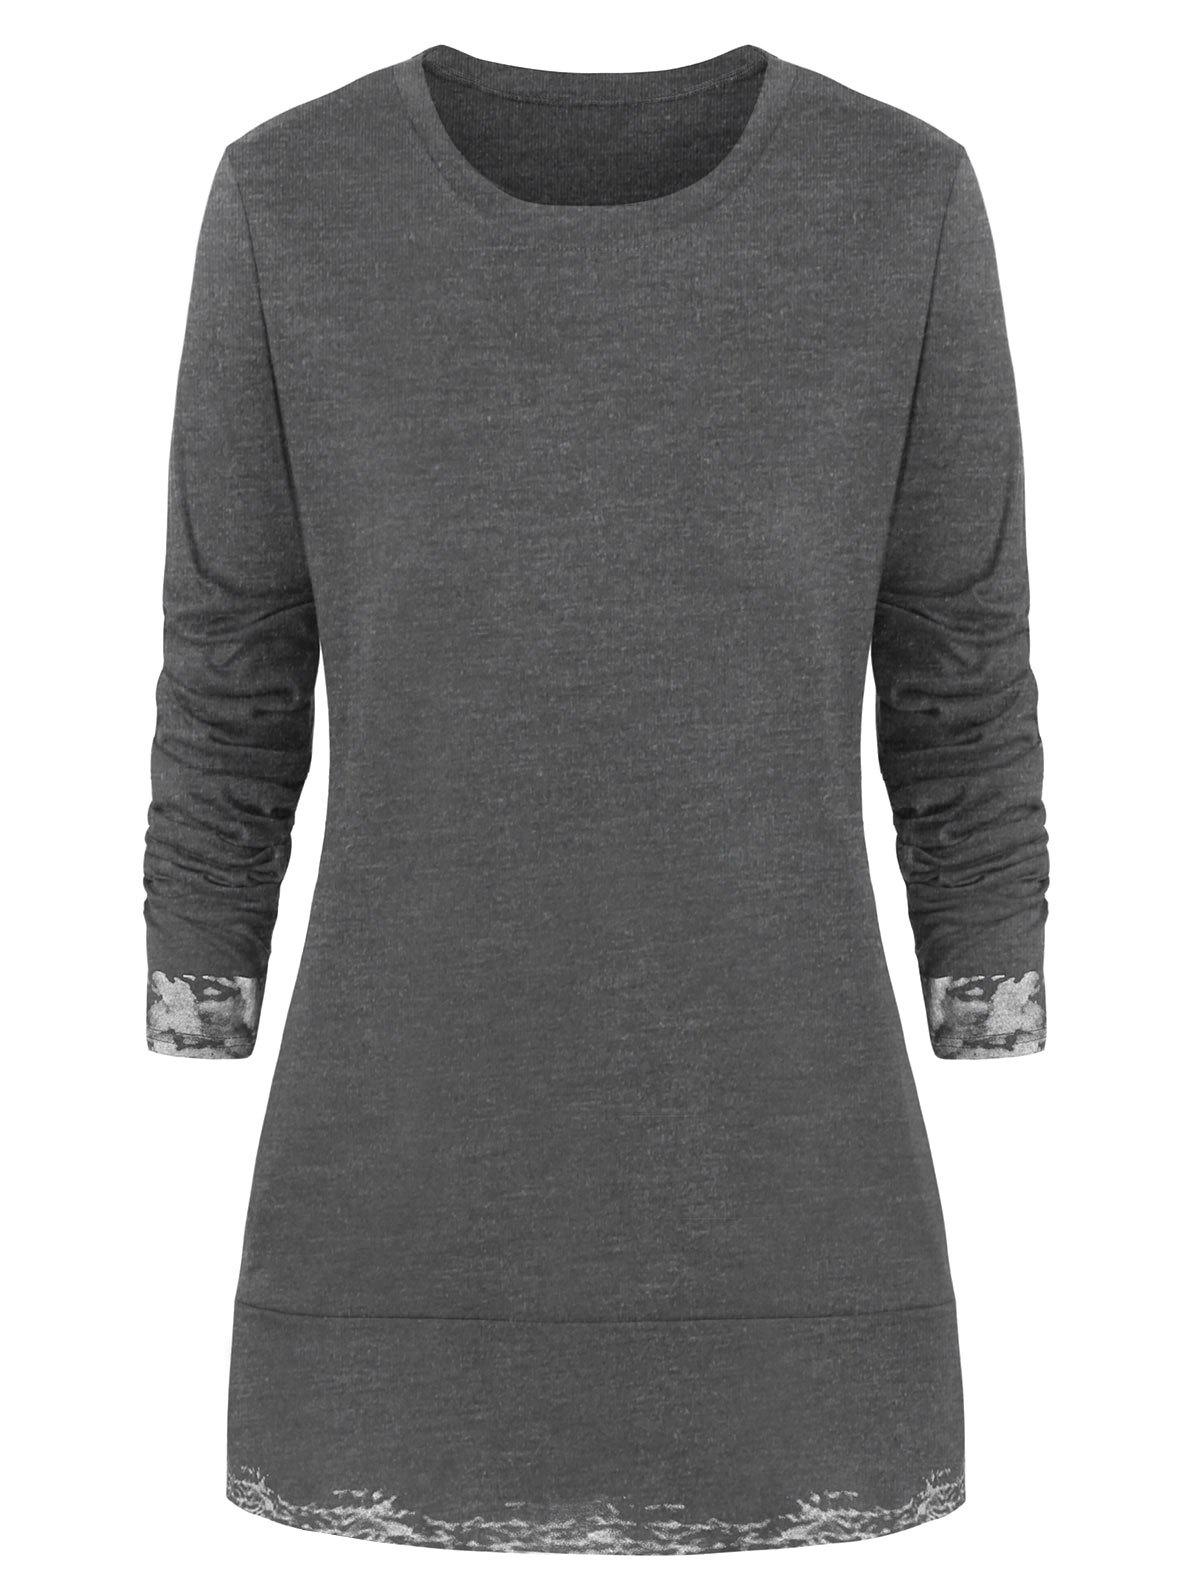 Plus Size Slits Printed Round Neck Tee - GRAY L